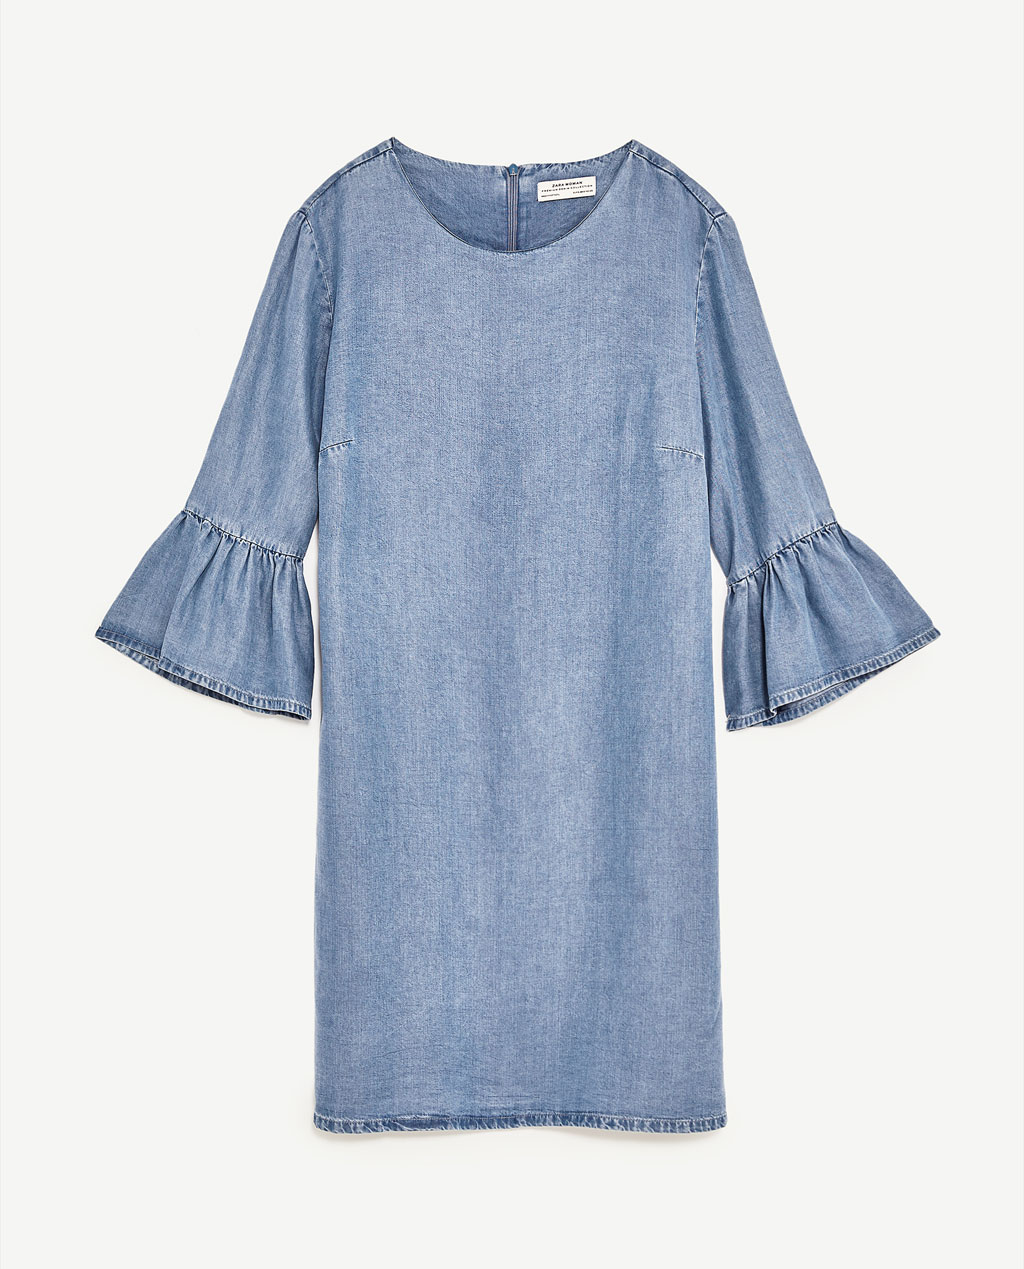 My Top Ten Zara Dresses Lovestyle40